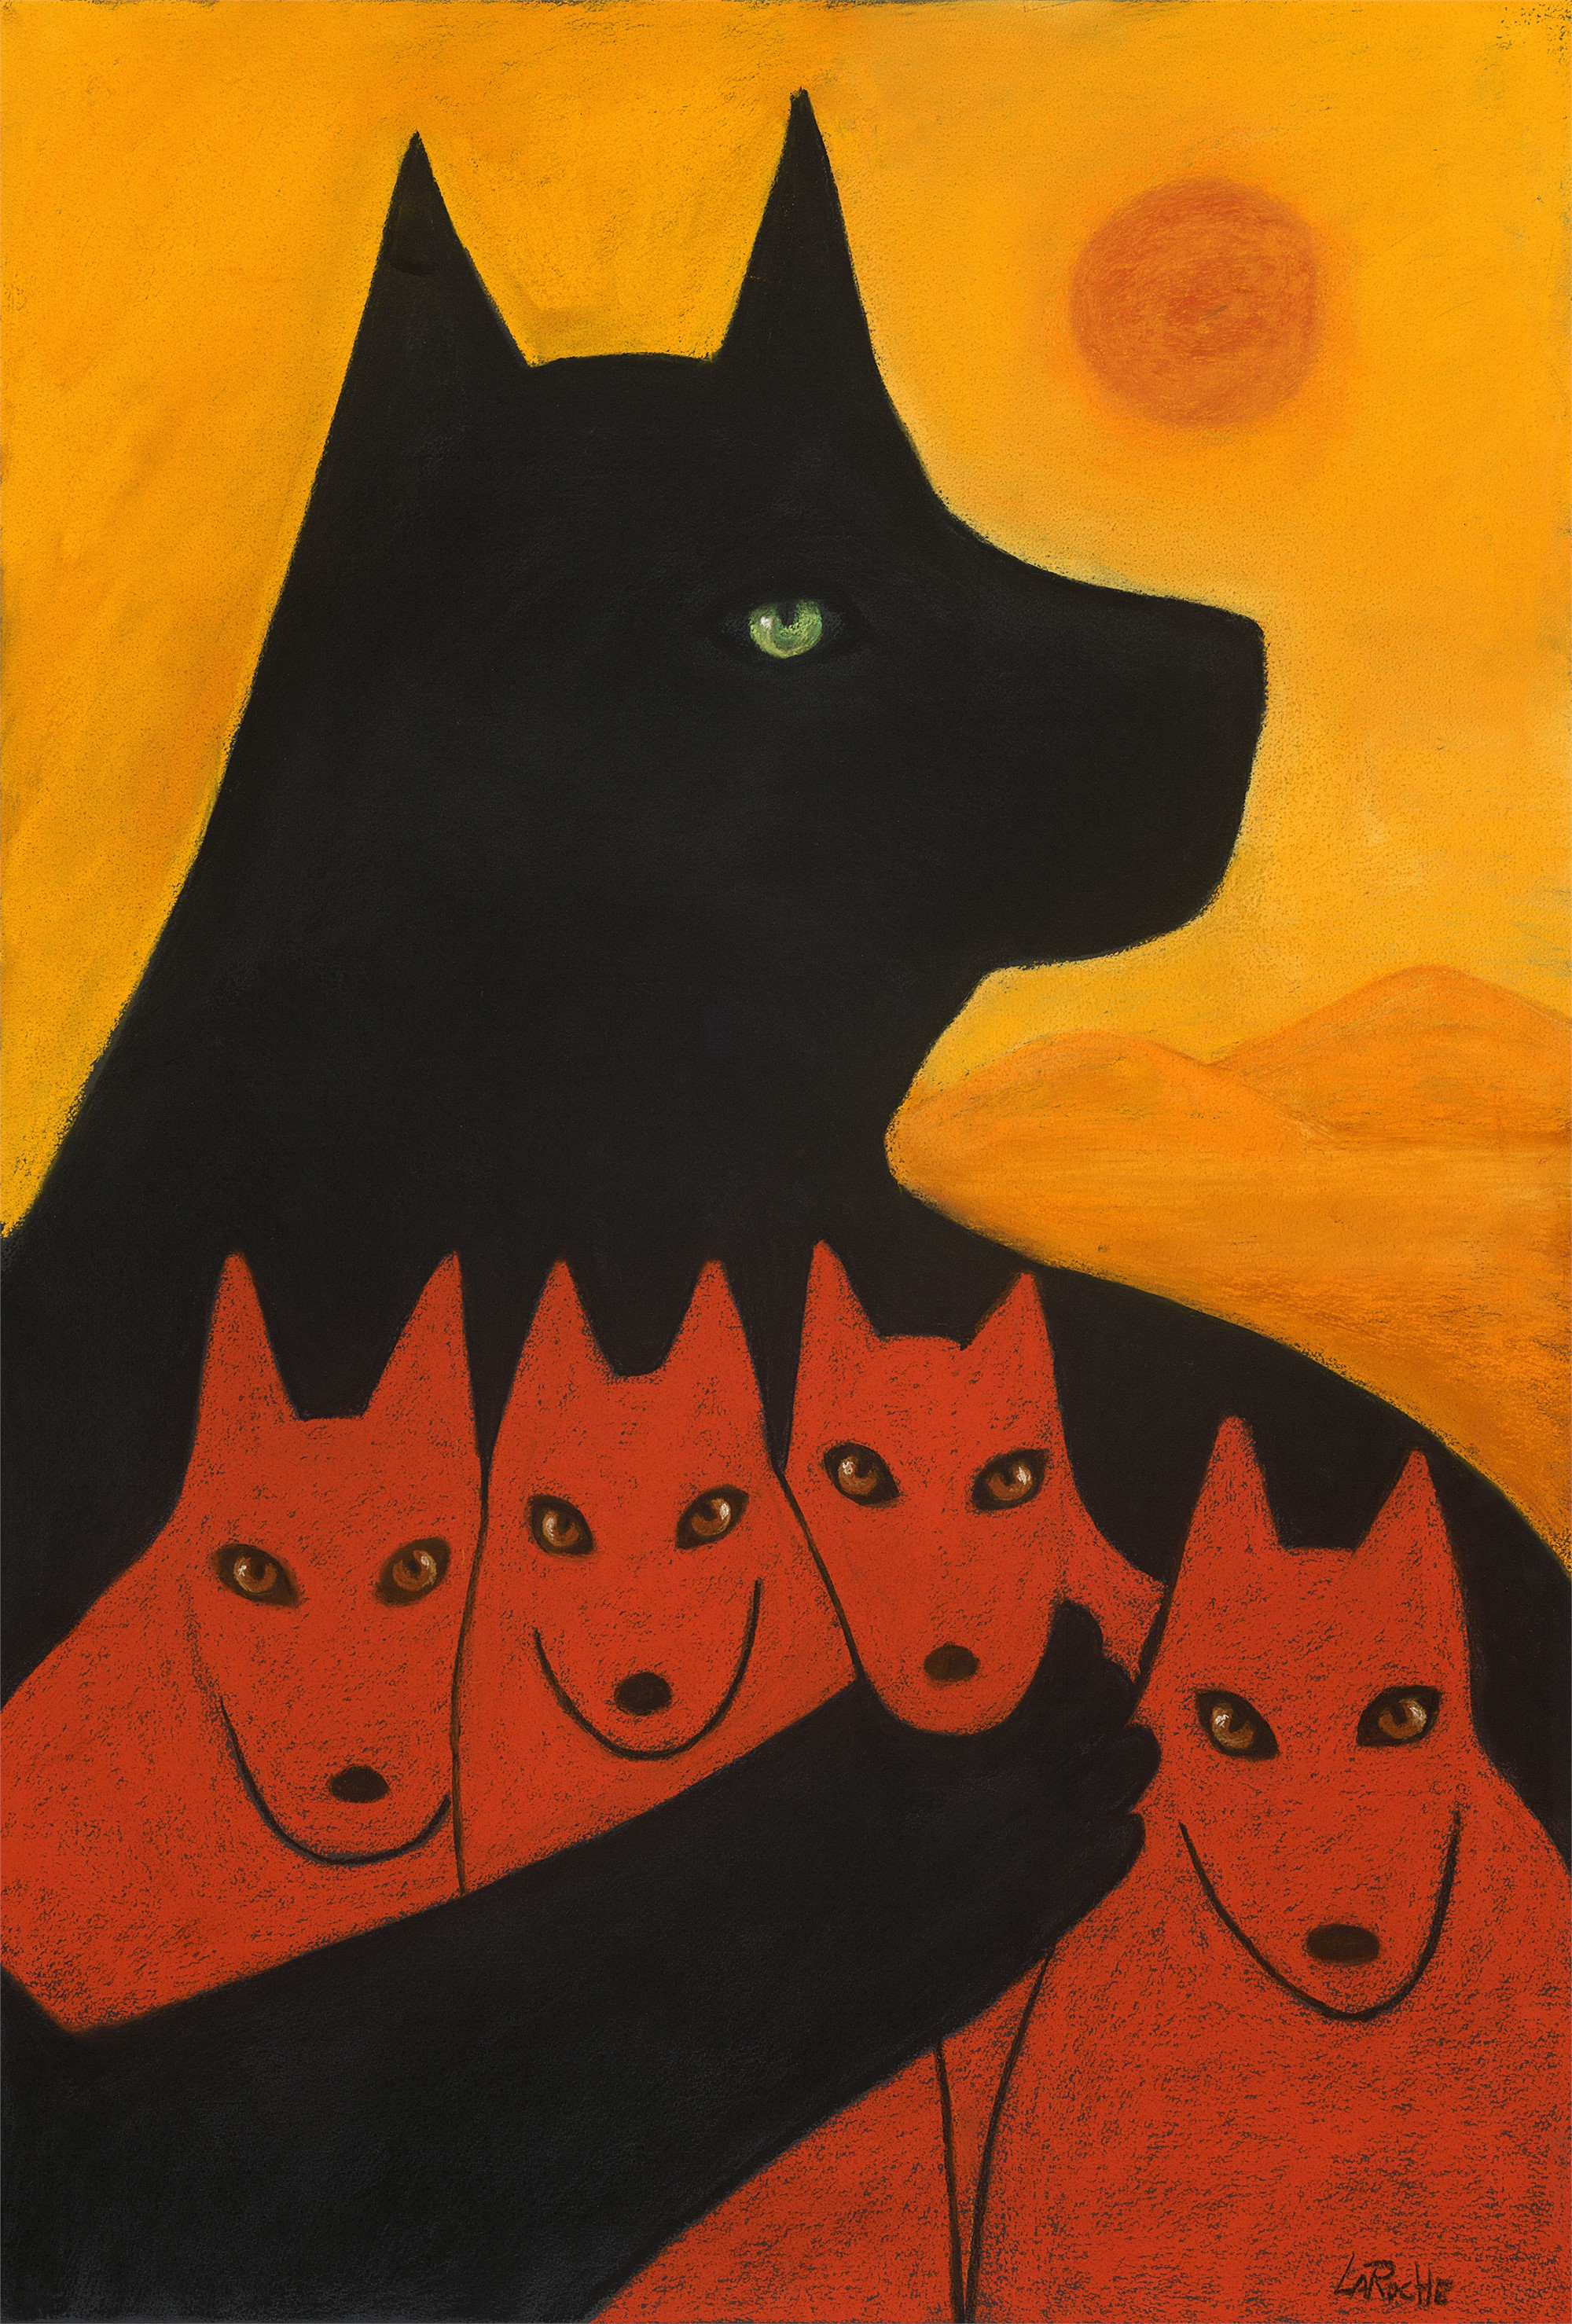 "PROTECTOR WITH PUPS - limited edition giclee on canvas (large) 44""x30"" $3500 or (medium) 38""x26"" $2200 or on paper w/frame size of: (large) 50""x37"" $3700 or (medium) 38""x26"" $2200 by Carole LaRoche"